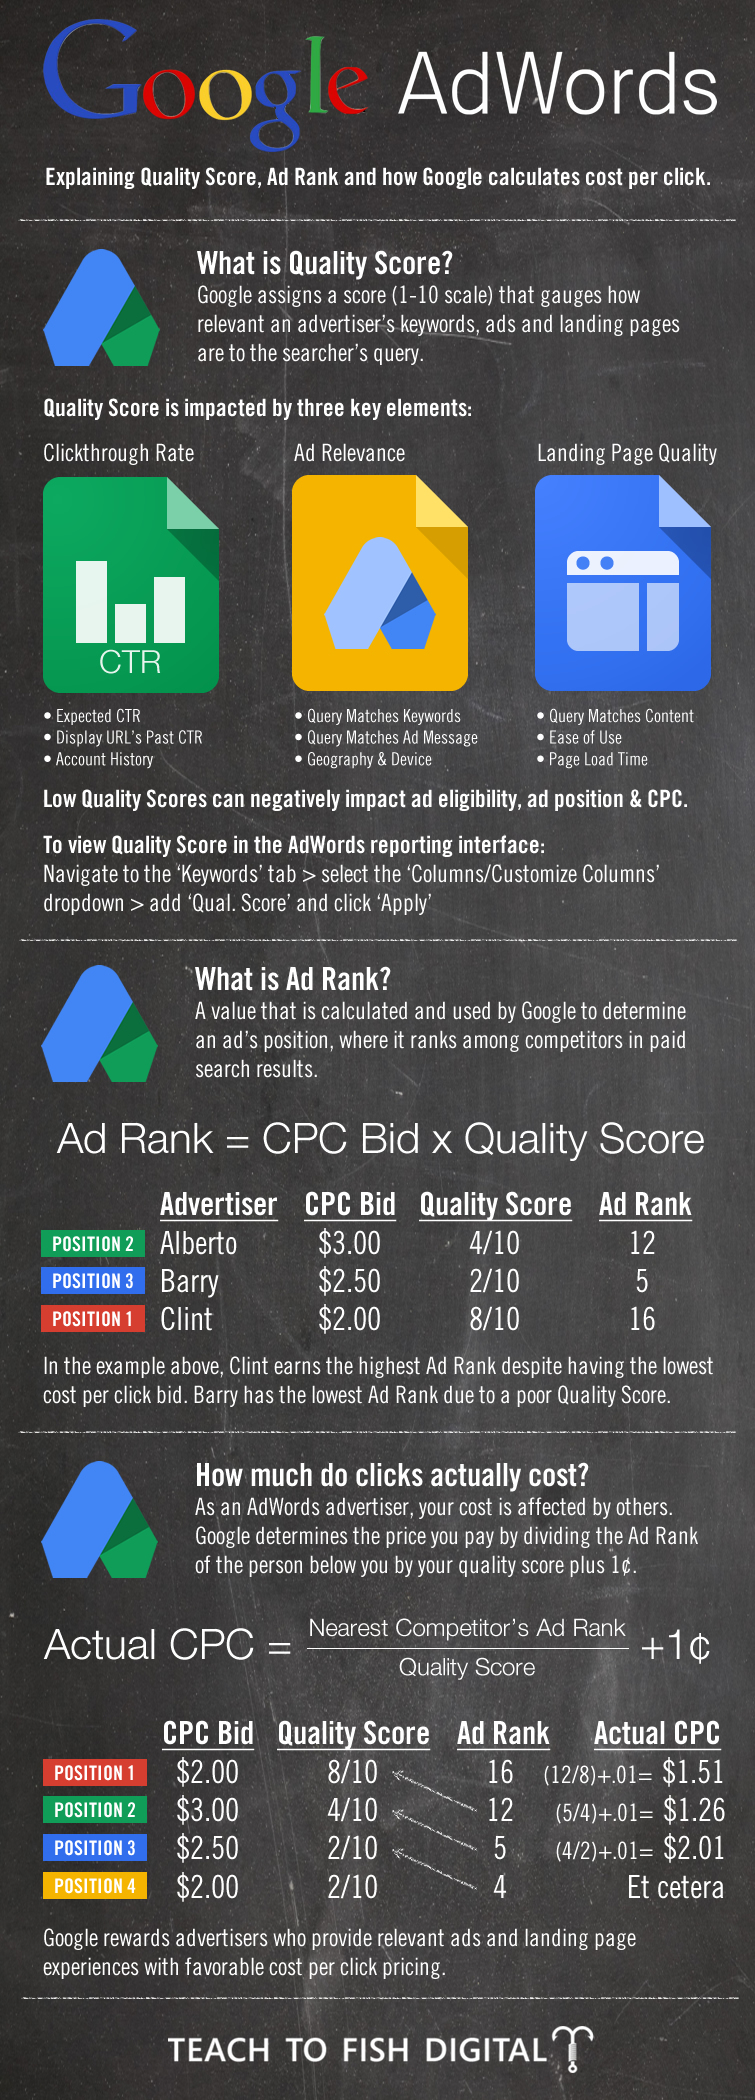 Of degree students, and more. Google AdWords Infographic | Teach To Fish Digital